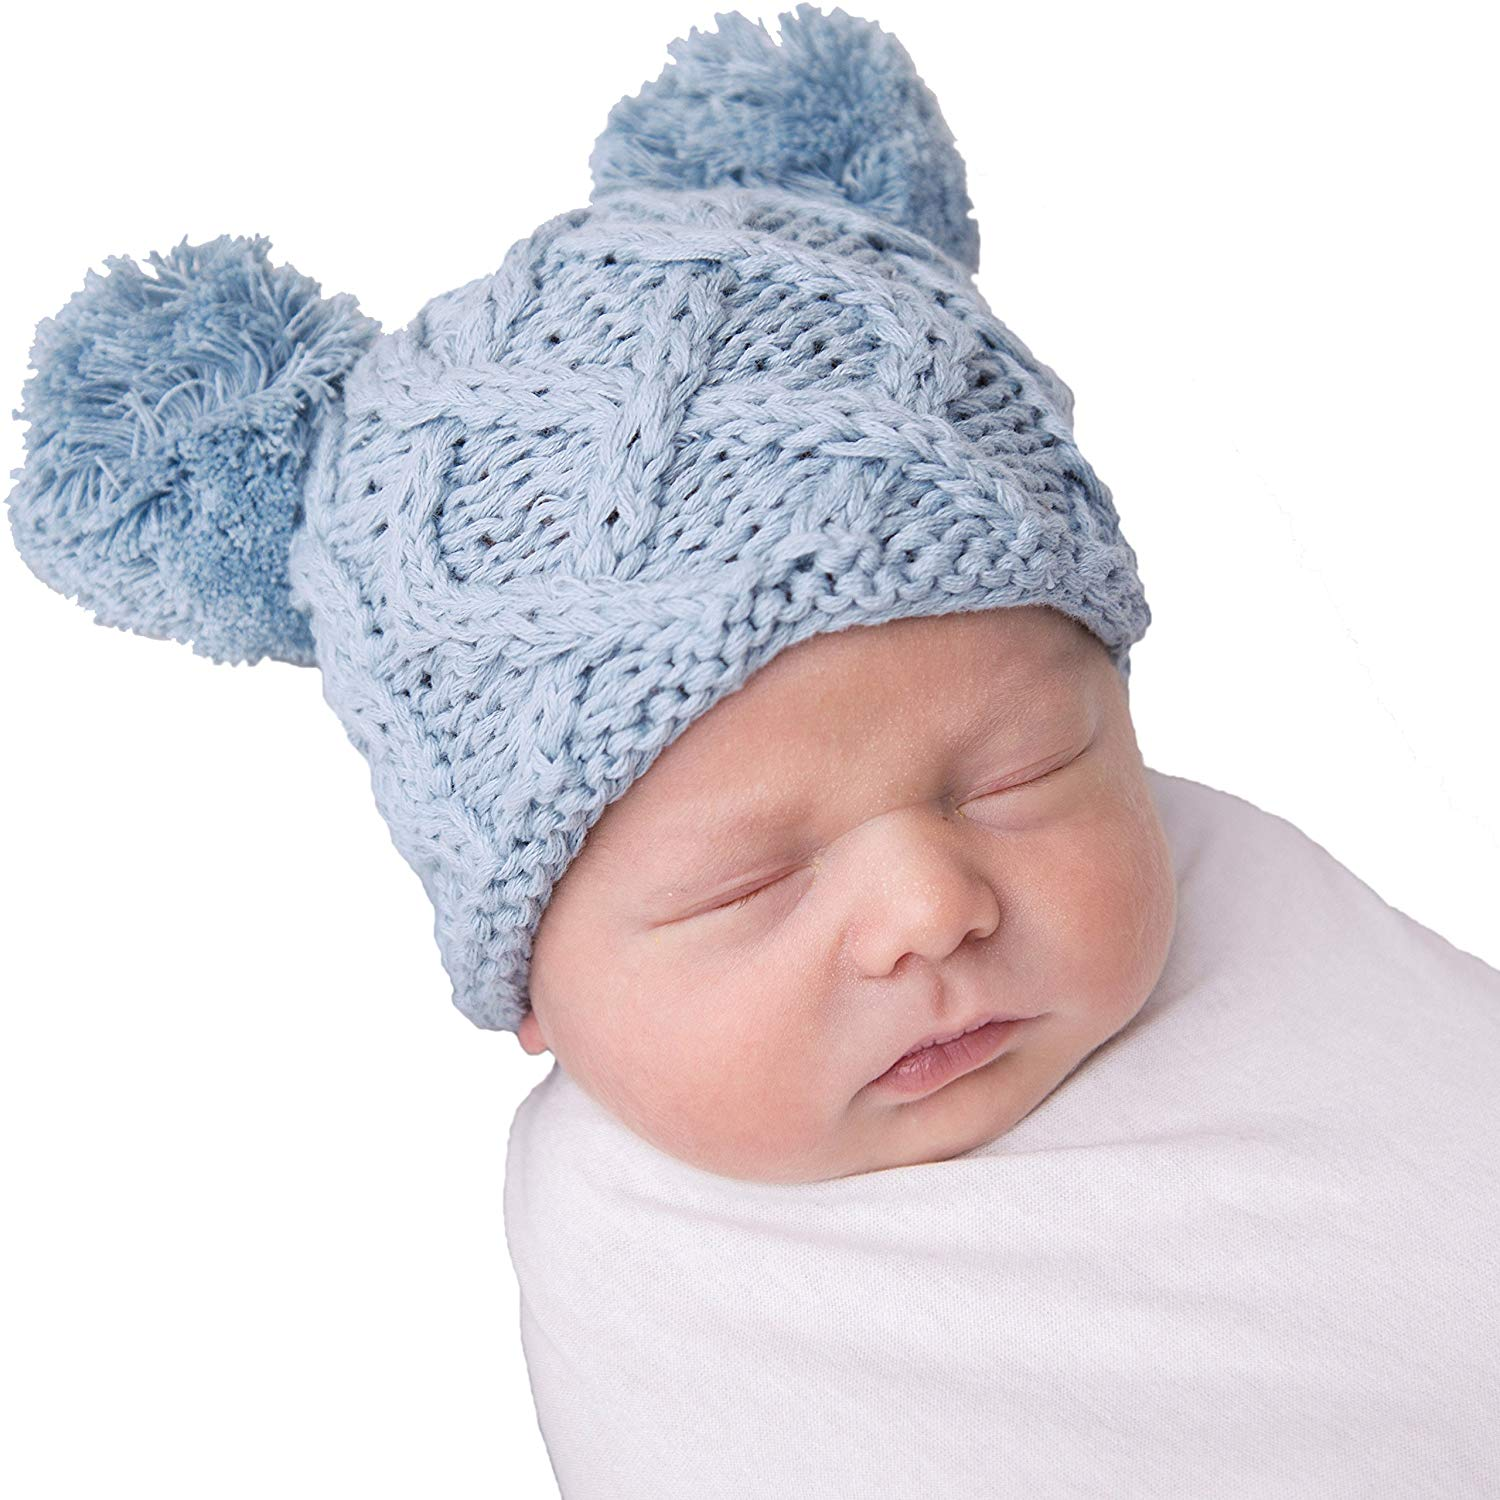 373a21fdea6 Get Quotations · Huggalugs Baby Cable Knit Pom Pom Newborn Girl or Boy  Hospital Hat In 3 Color Choices